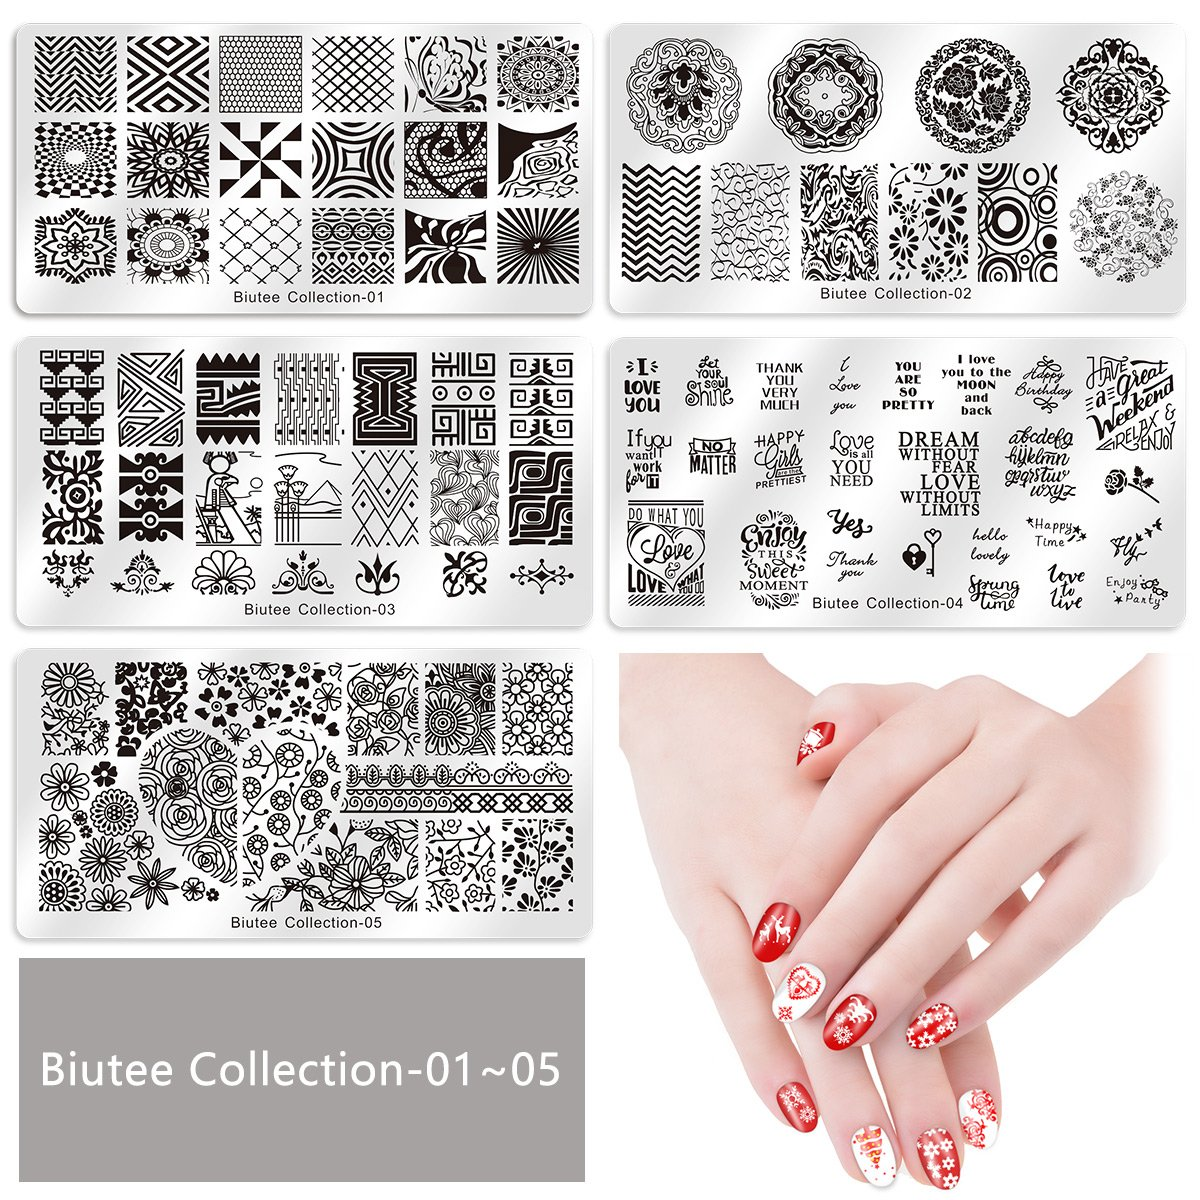 Biutee 19pcs Nail Stamp Plates set 15 plate 1Stamper 2Scraper 1storage bag Nails Art Stamping Plate Scraper Stamper Set Leaves Flowers Animal Nail plate Template Image Plate : Beauty